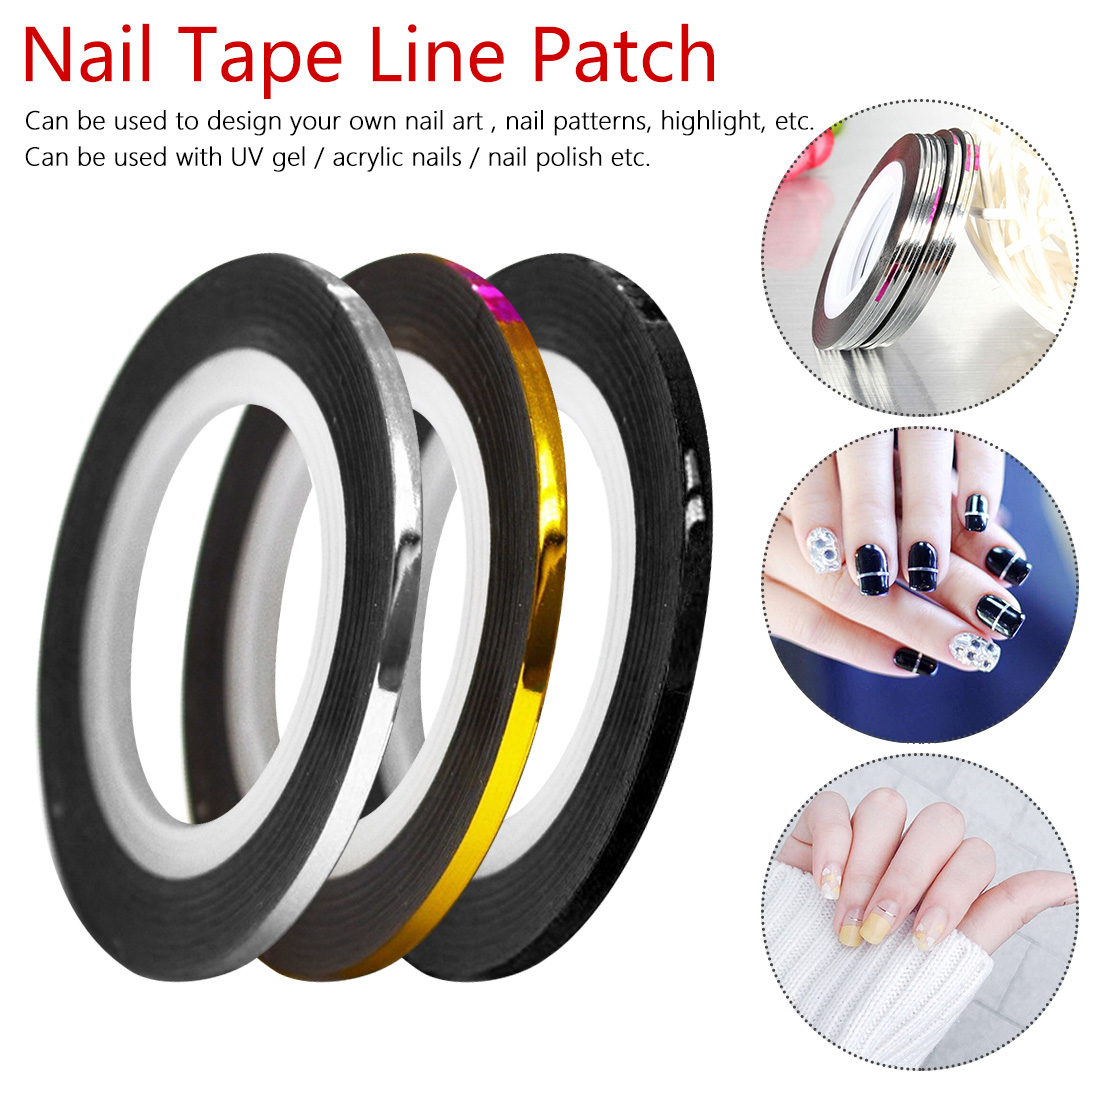 Beauty Roll Stripping Sticker Foils Nail Art Tape Line 1pcs 2mm 3mm DIY Silver Gold Black White Tools Manicure Tool